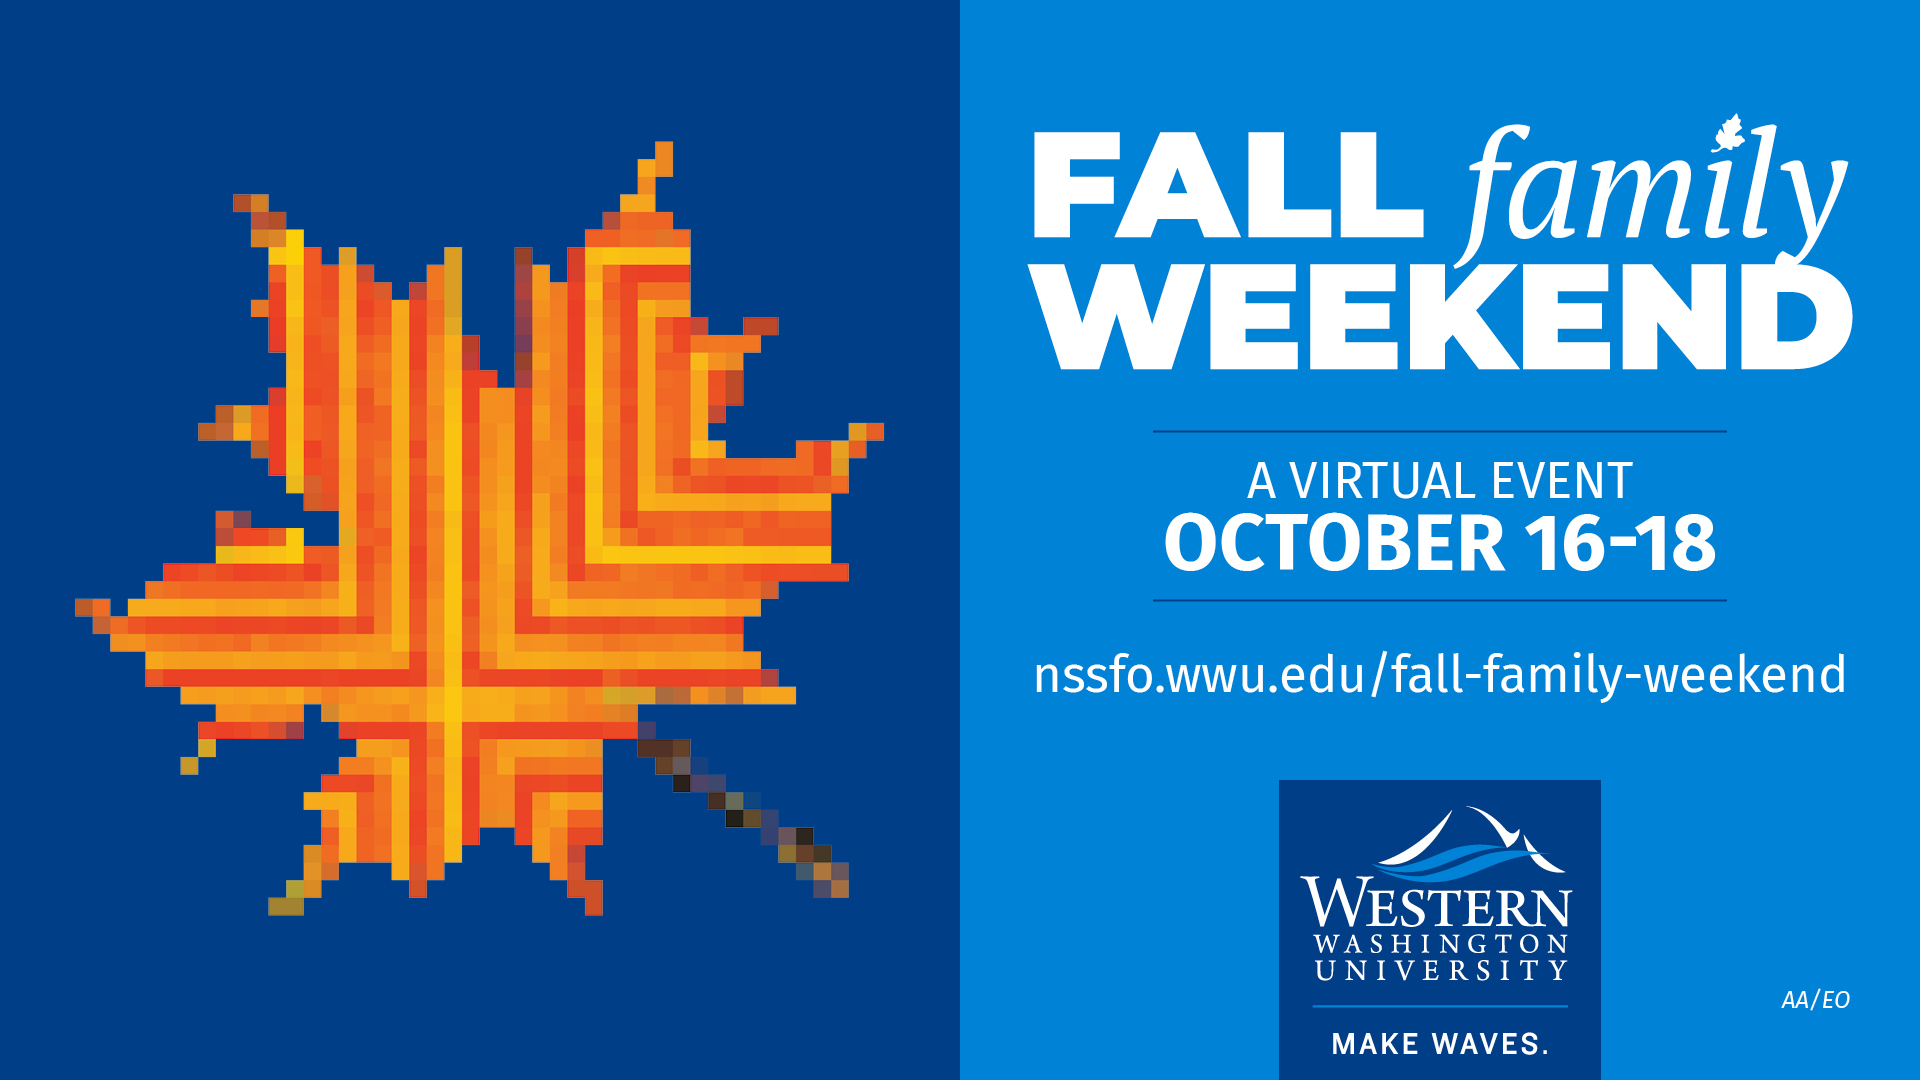 Fall Family Weekend, October 16-18